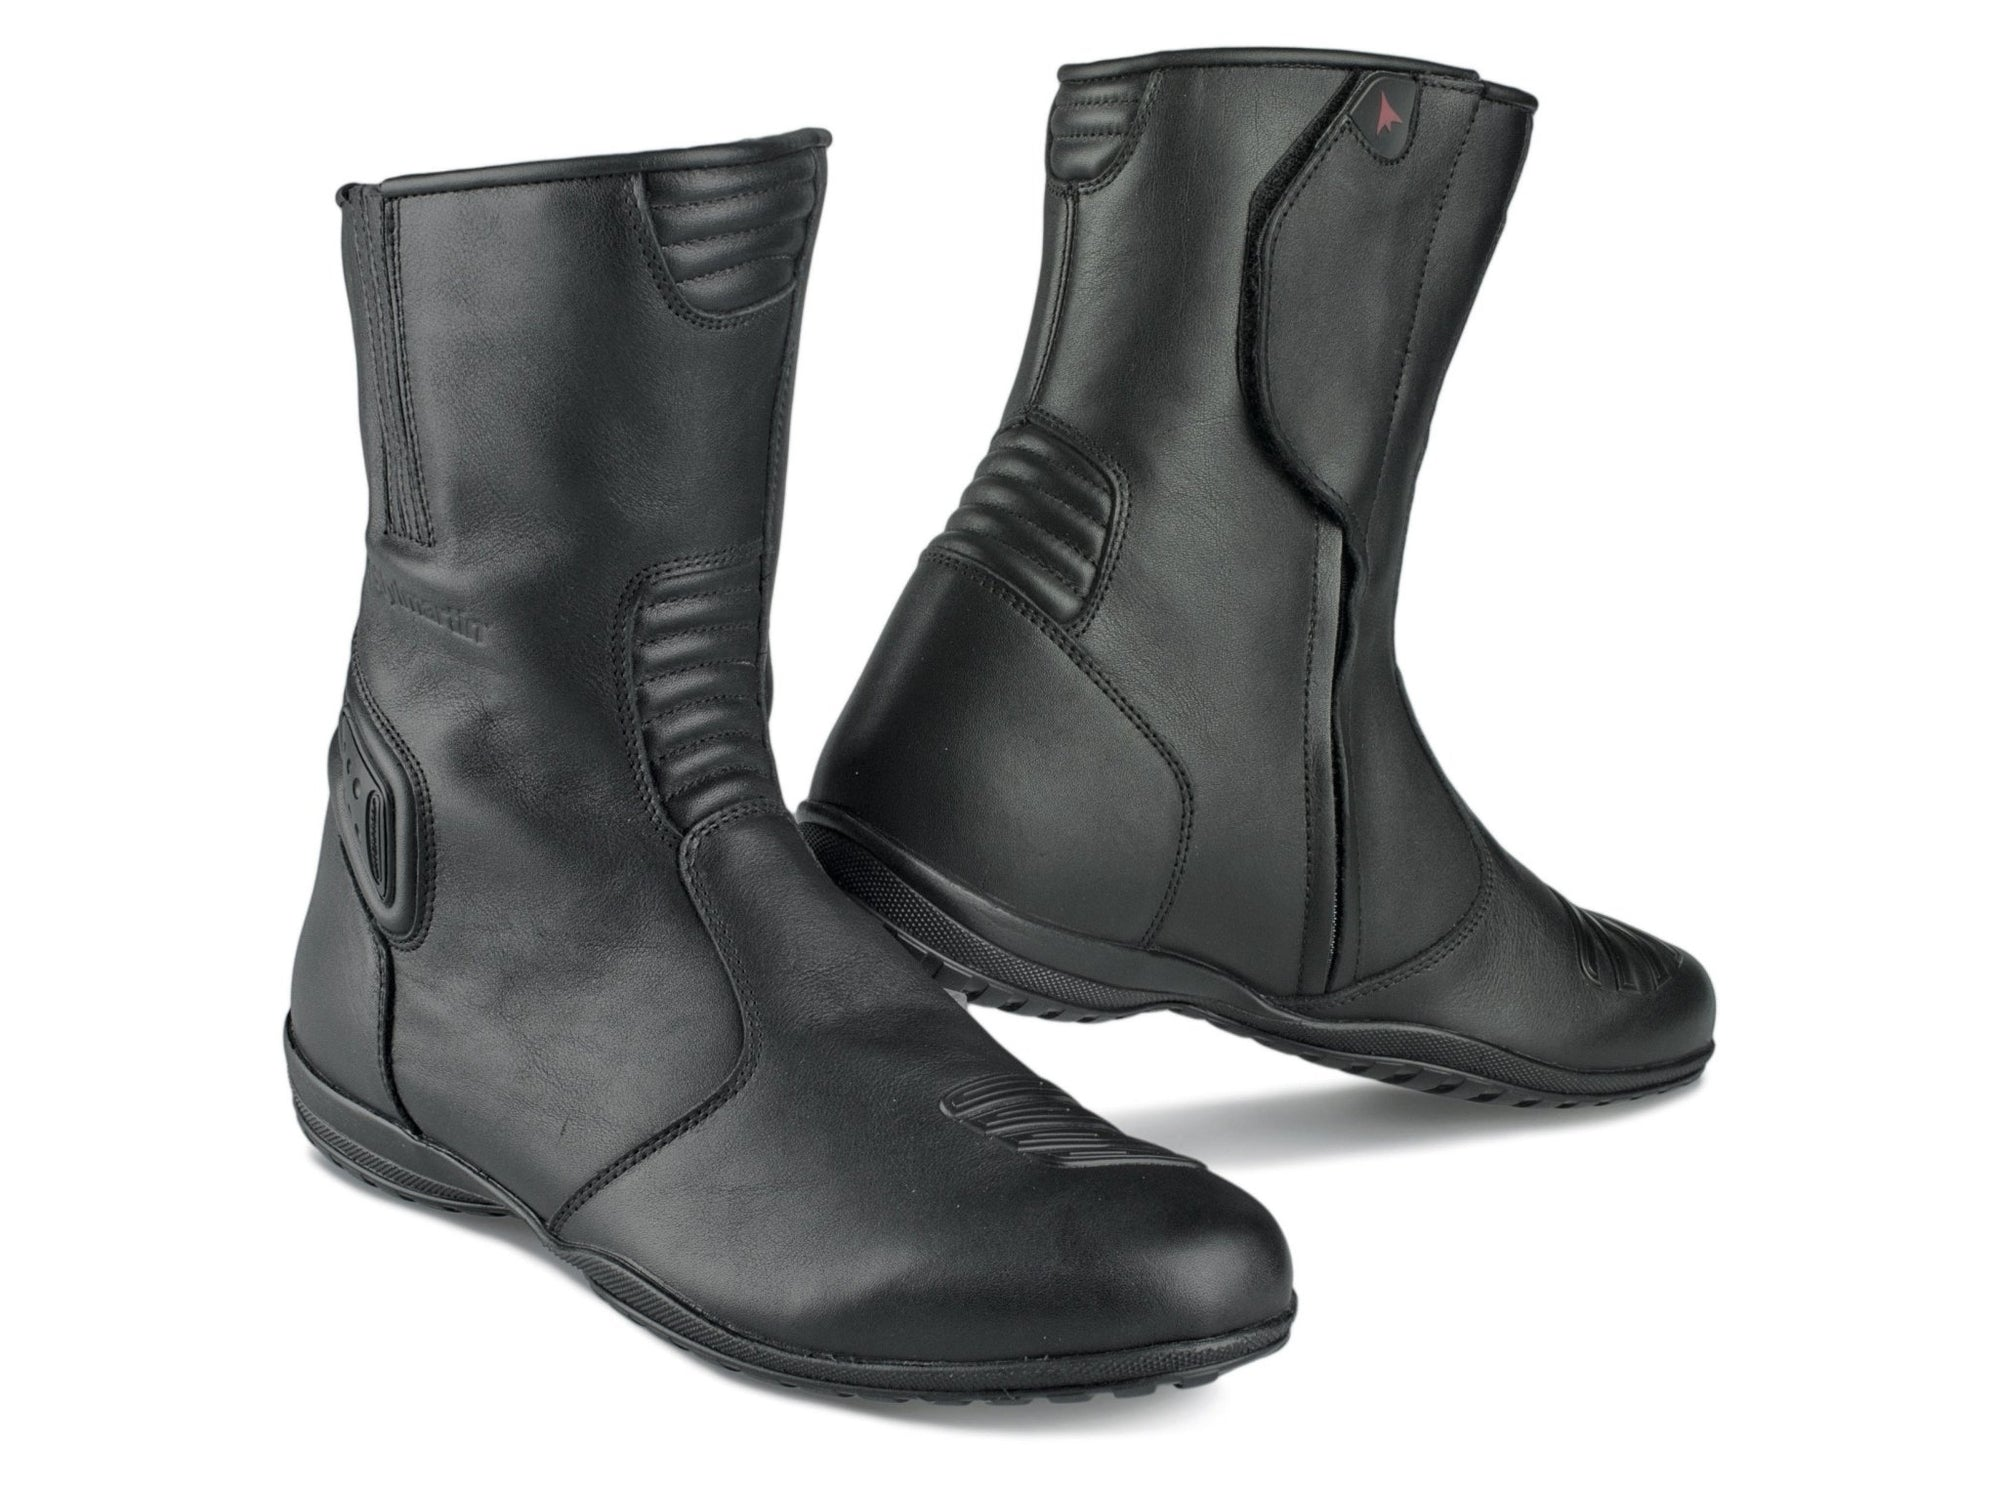 Stylmartin - Stylmartin Denver WP Touring in Black - Boots - Salt Flats Clothing